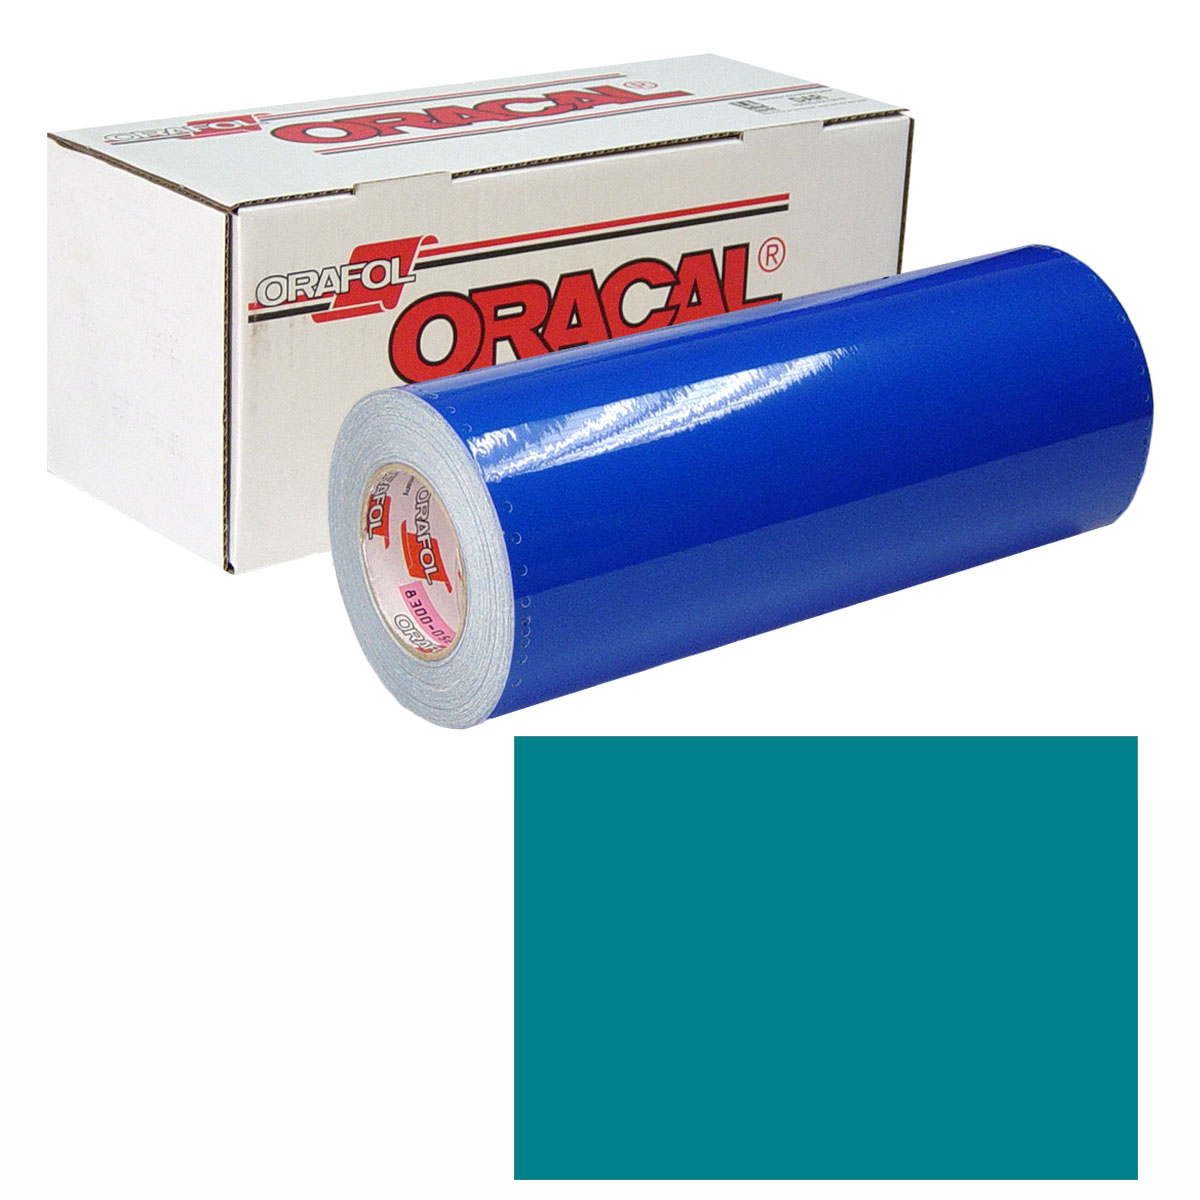 ORACAL 631 15In X 50Yd 066 Turquoise Blue